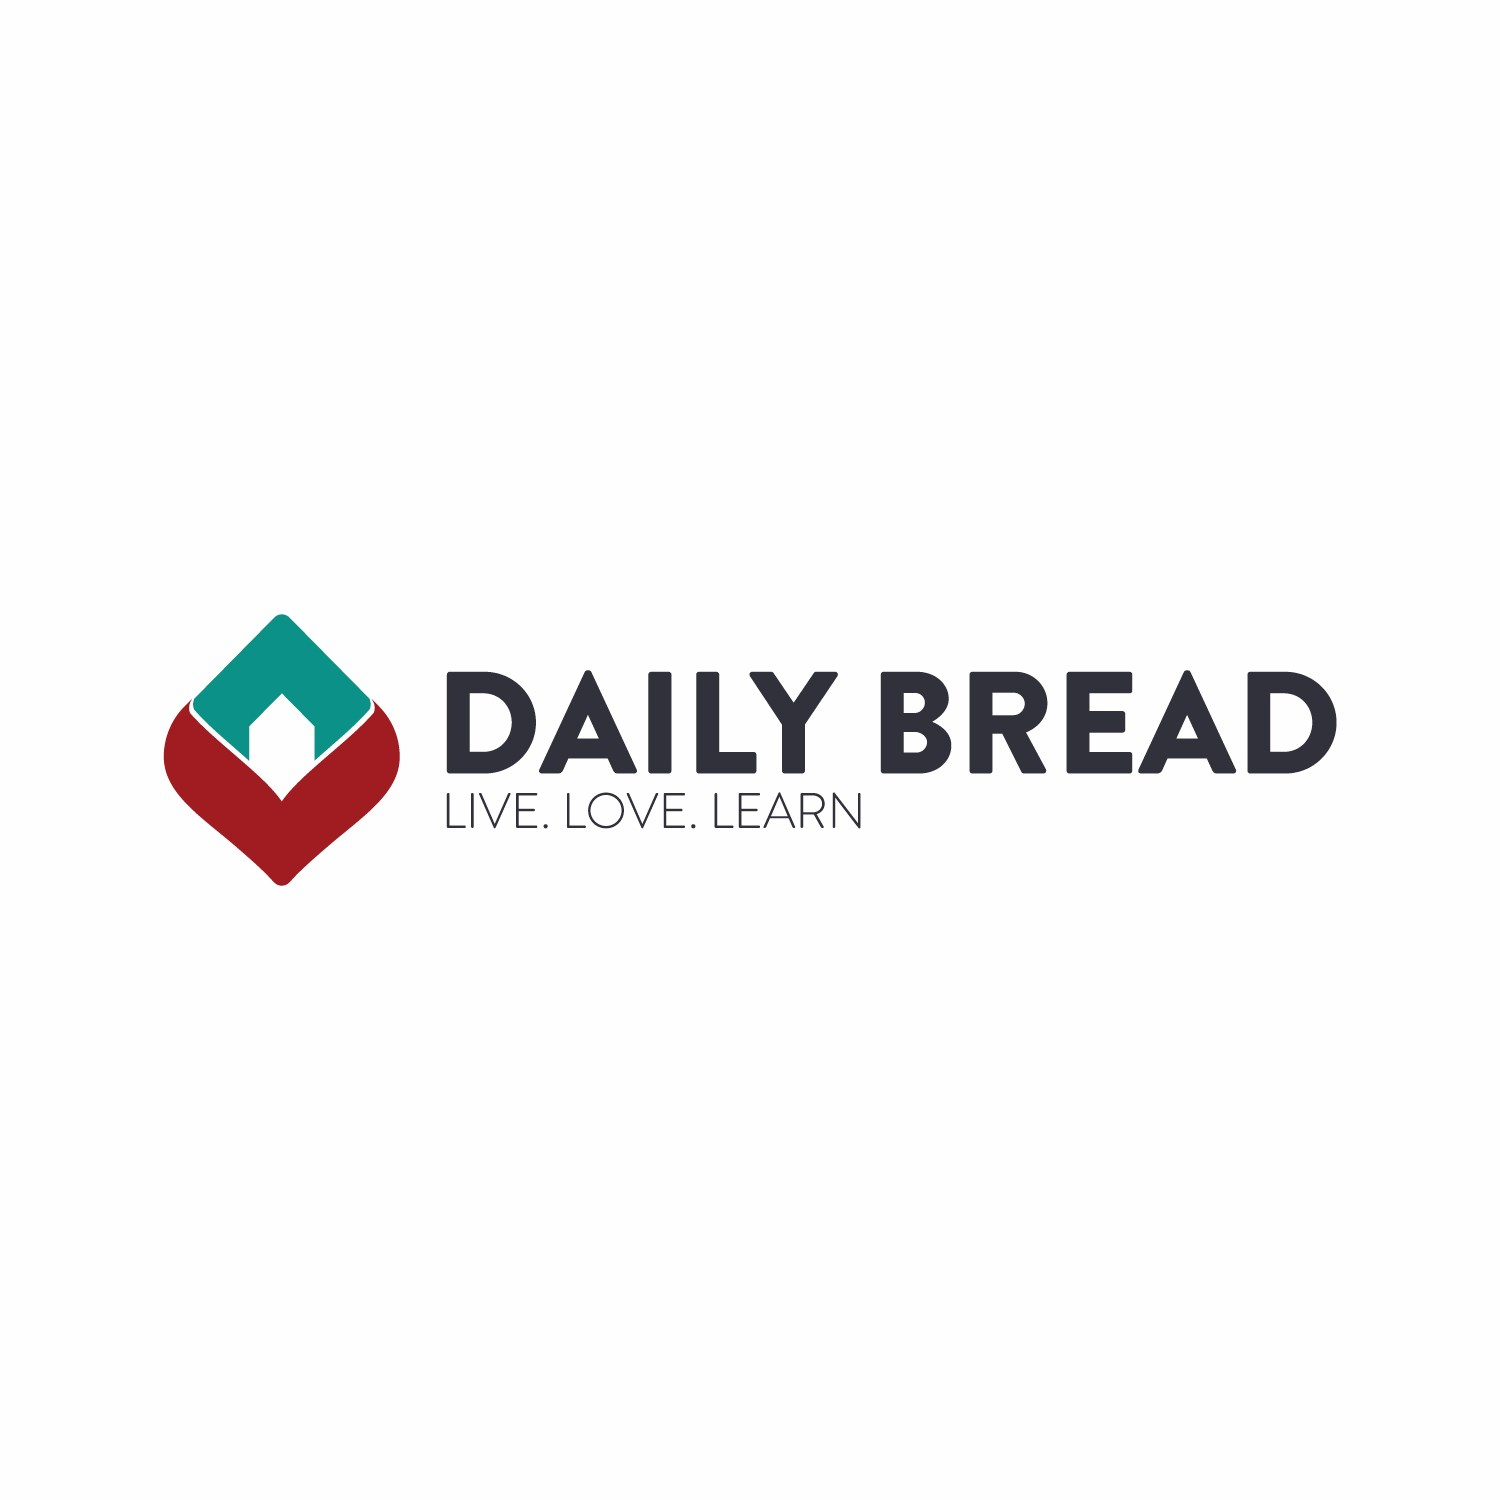 The Daily Bread Missions Charitable Trust